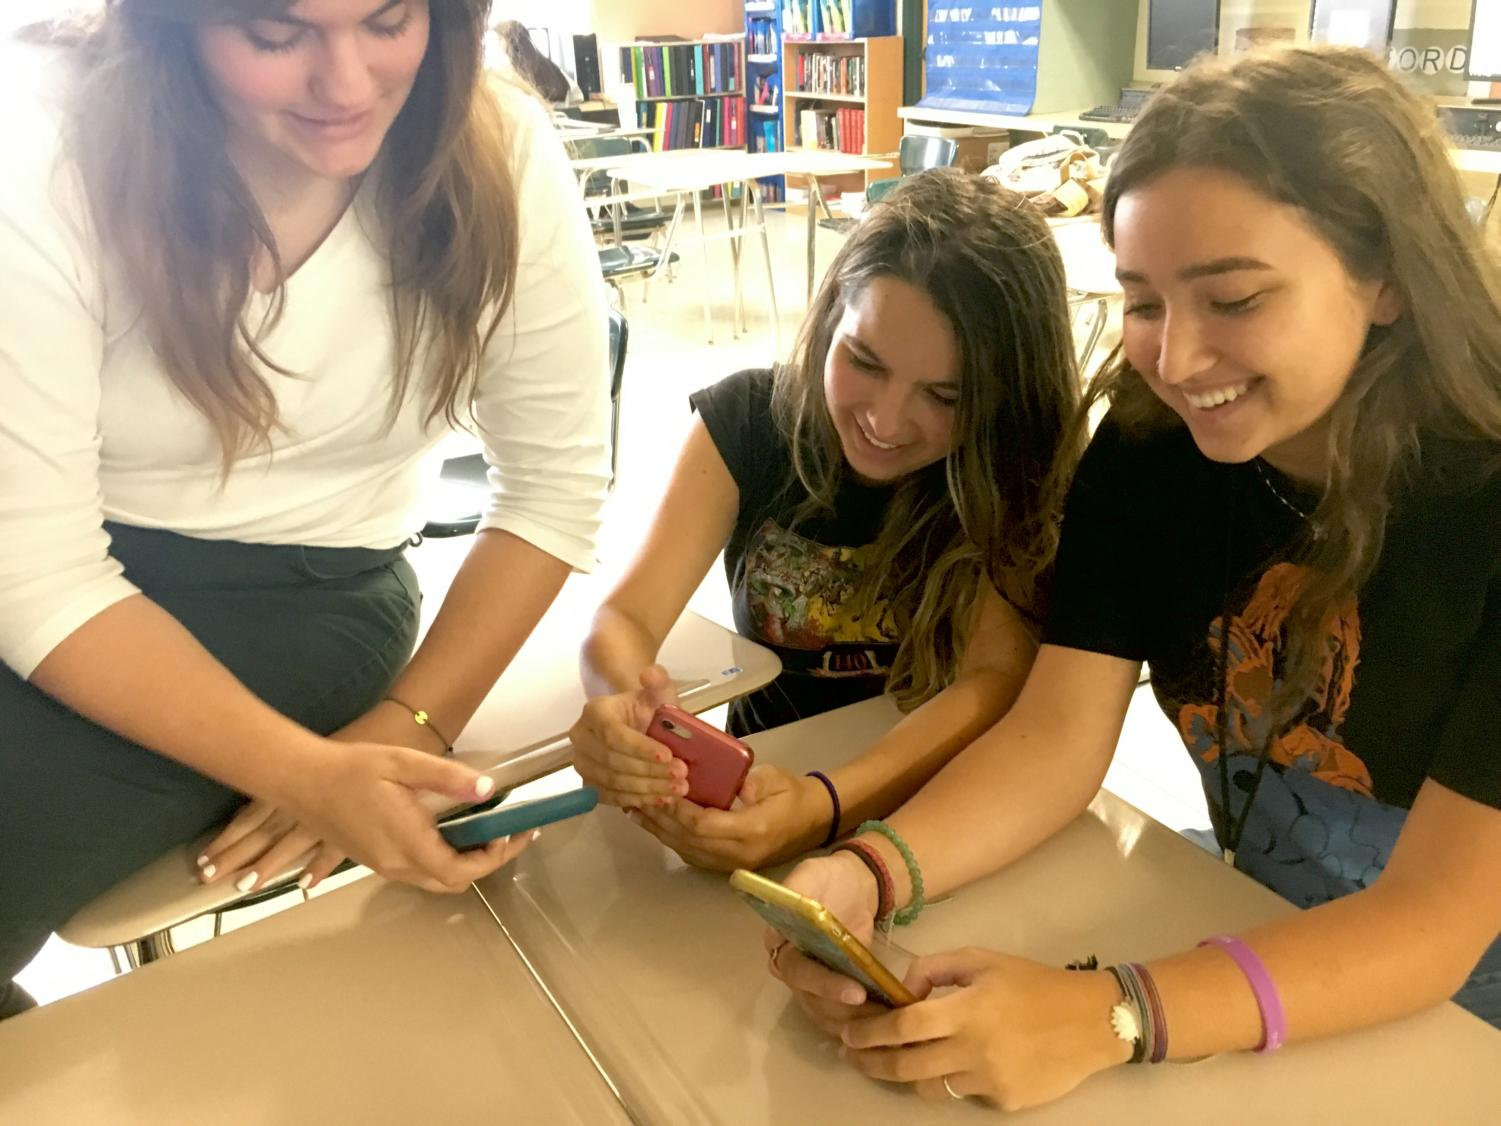 (From left to right) Seniors Adriana Beltrano, Larissa Holloway and Lilly Grella staying on top of their school game by downloading academic apps.